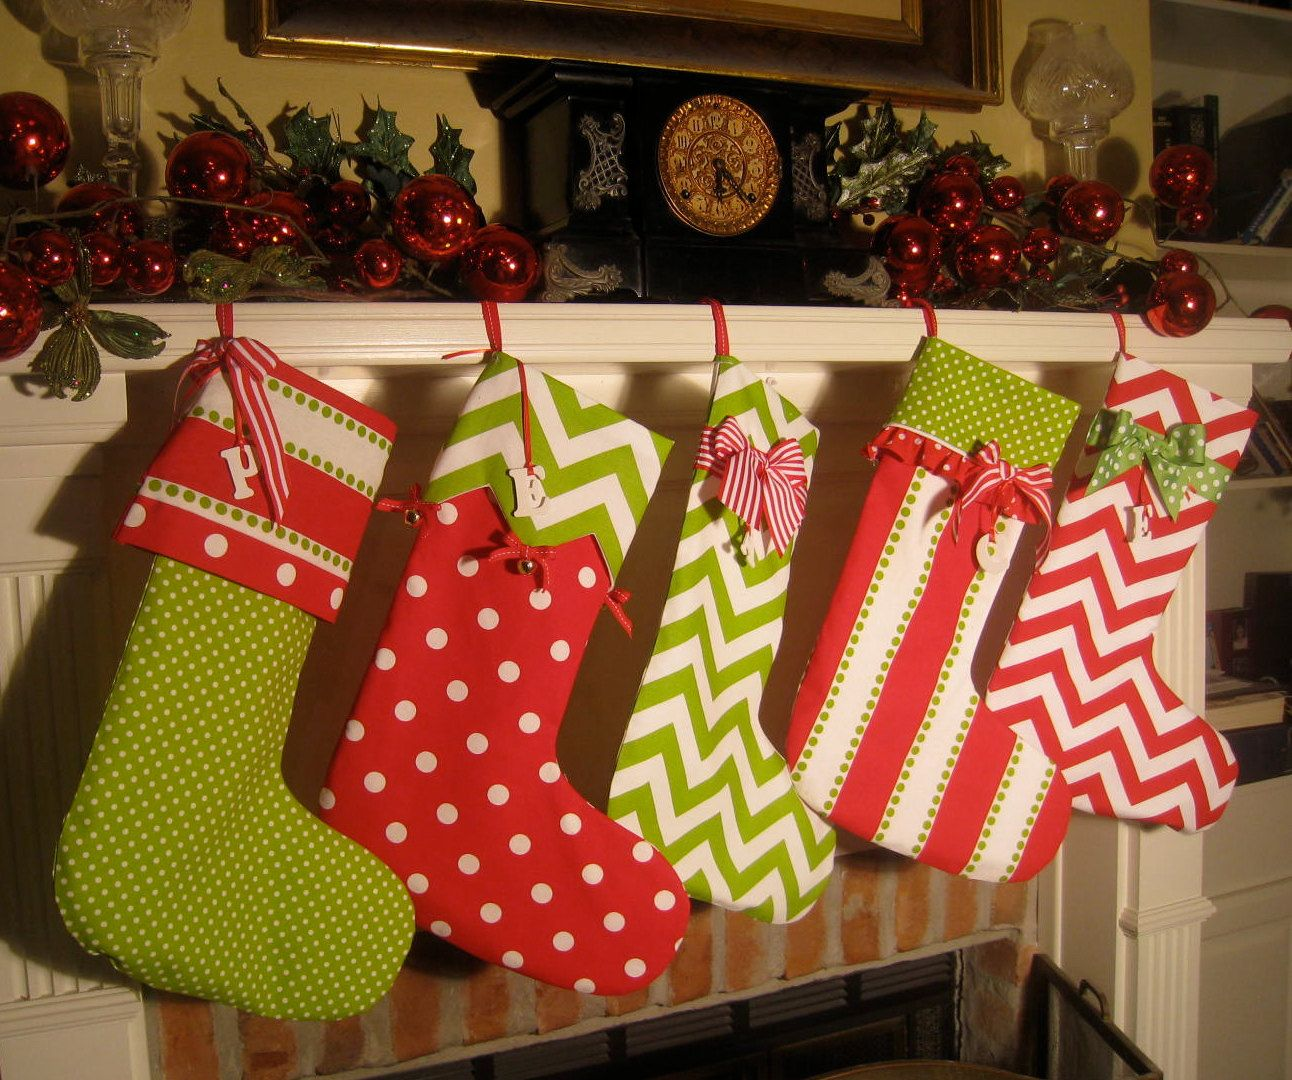 4 Christmas Stockings Personalized In Bright Red And Green Cotton 100 00 Via Etsy